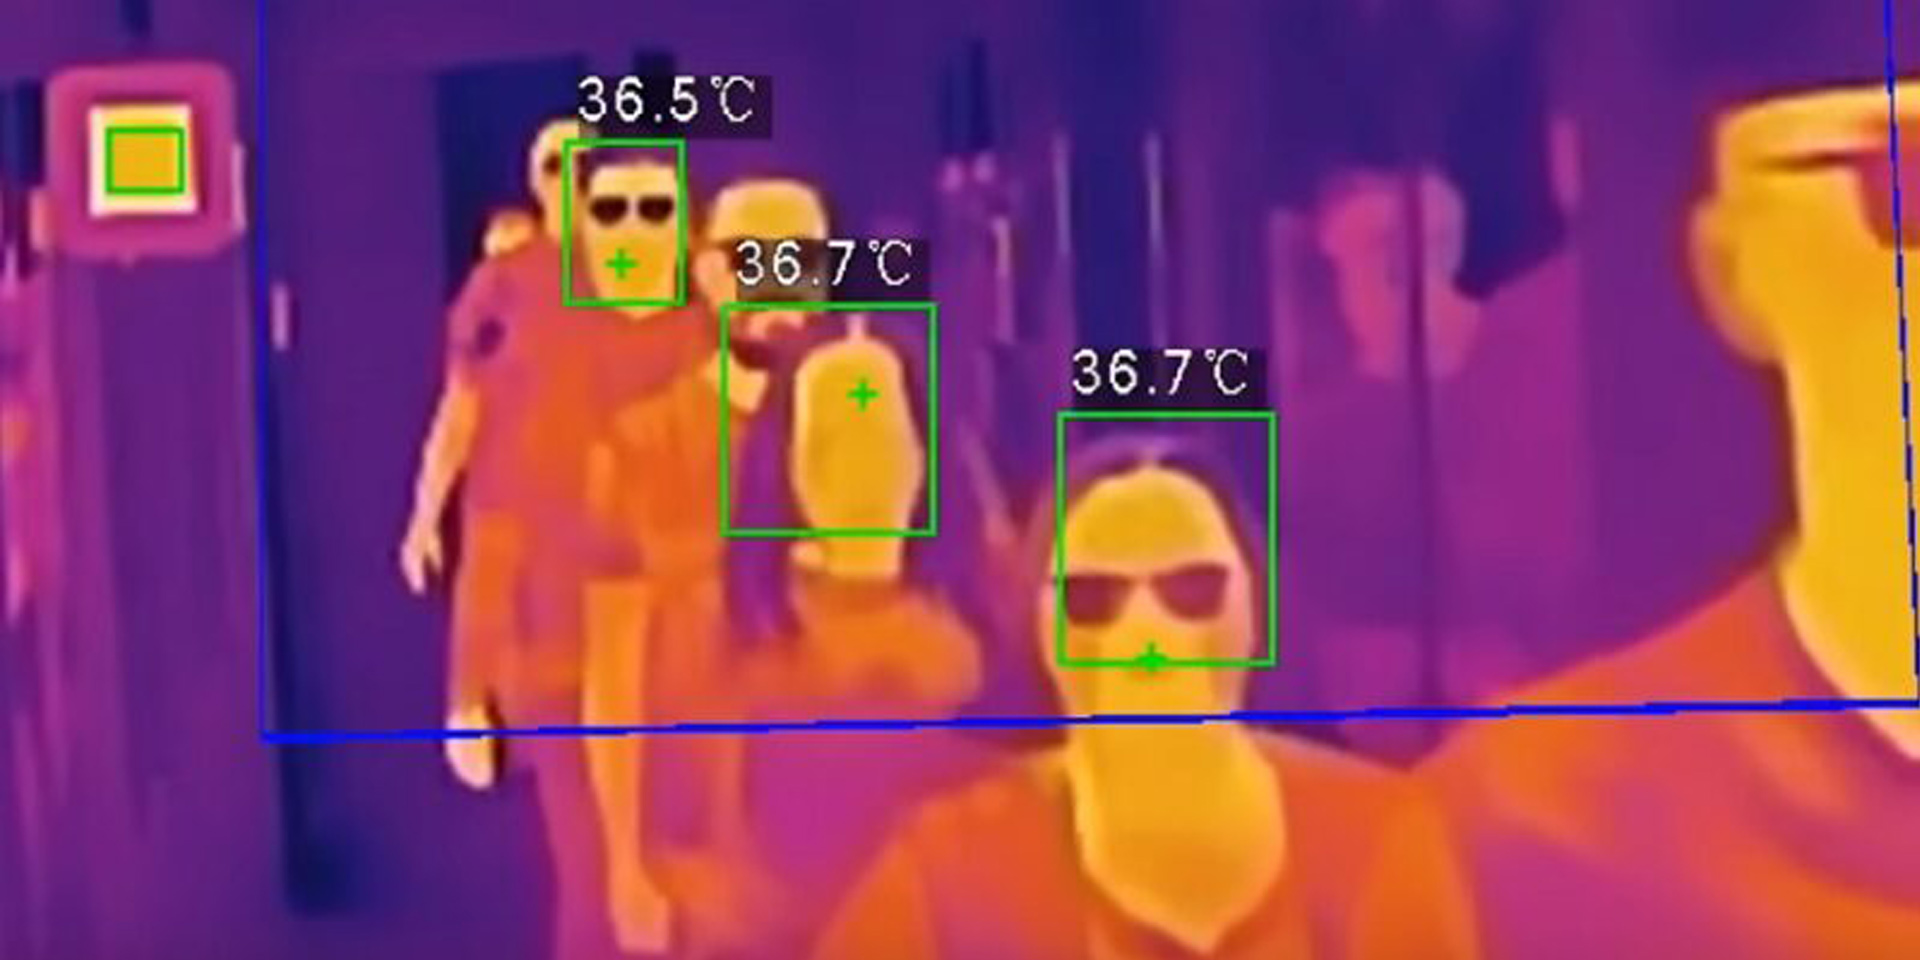 thermal and flow control cameras by futuretel